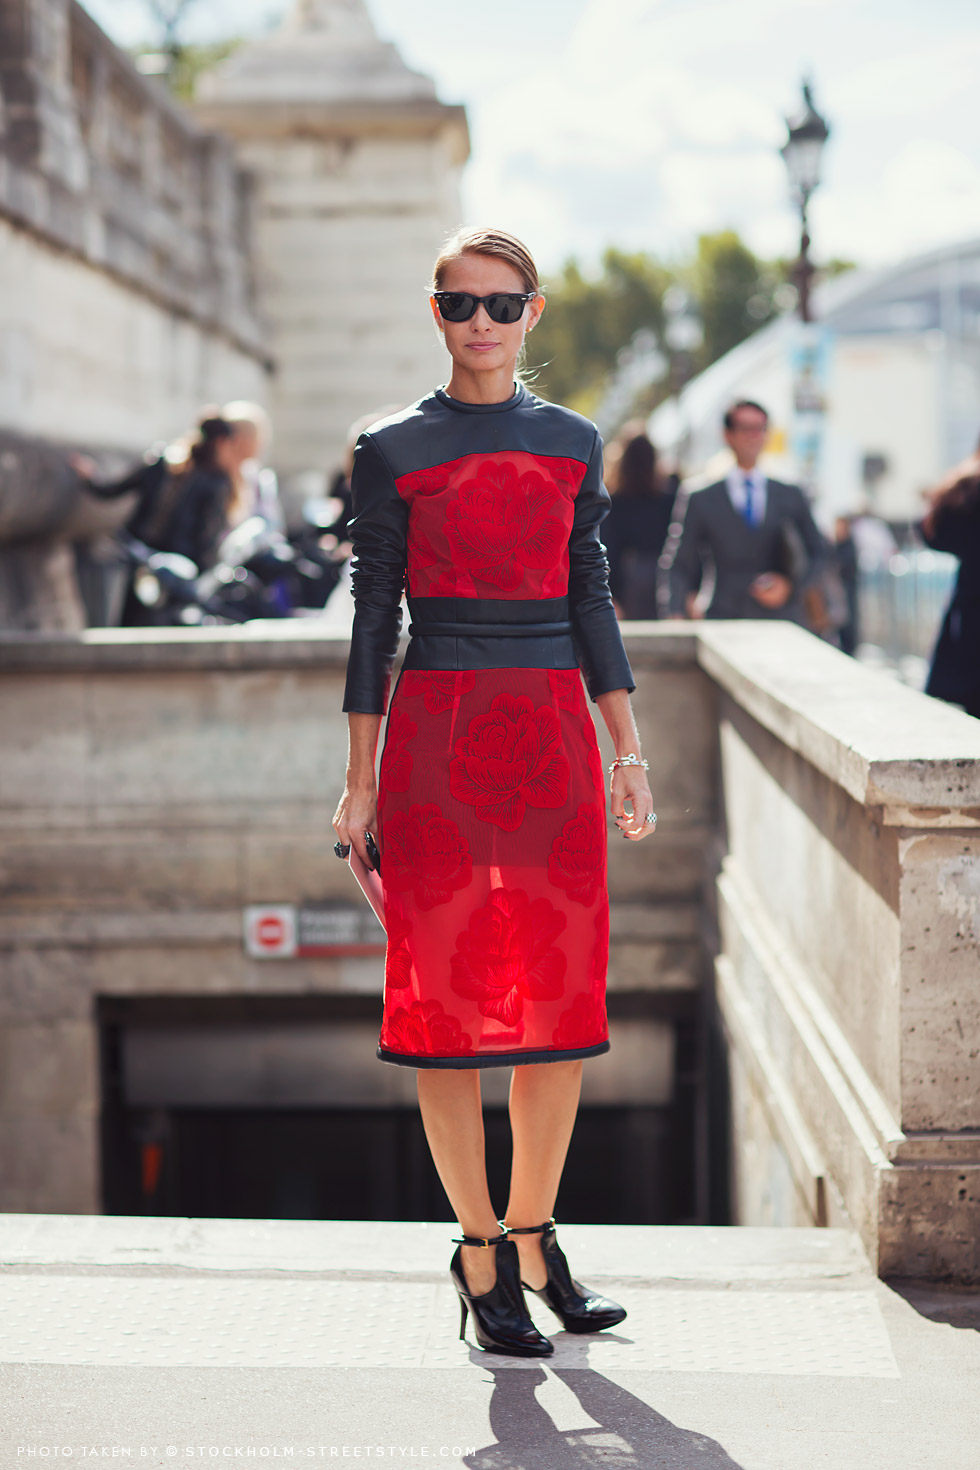 red black roses dress street style